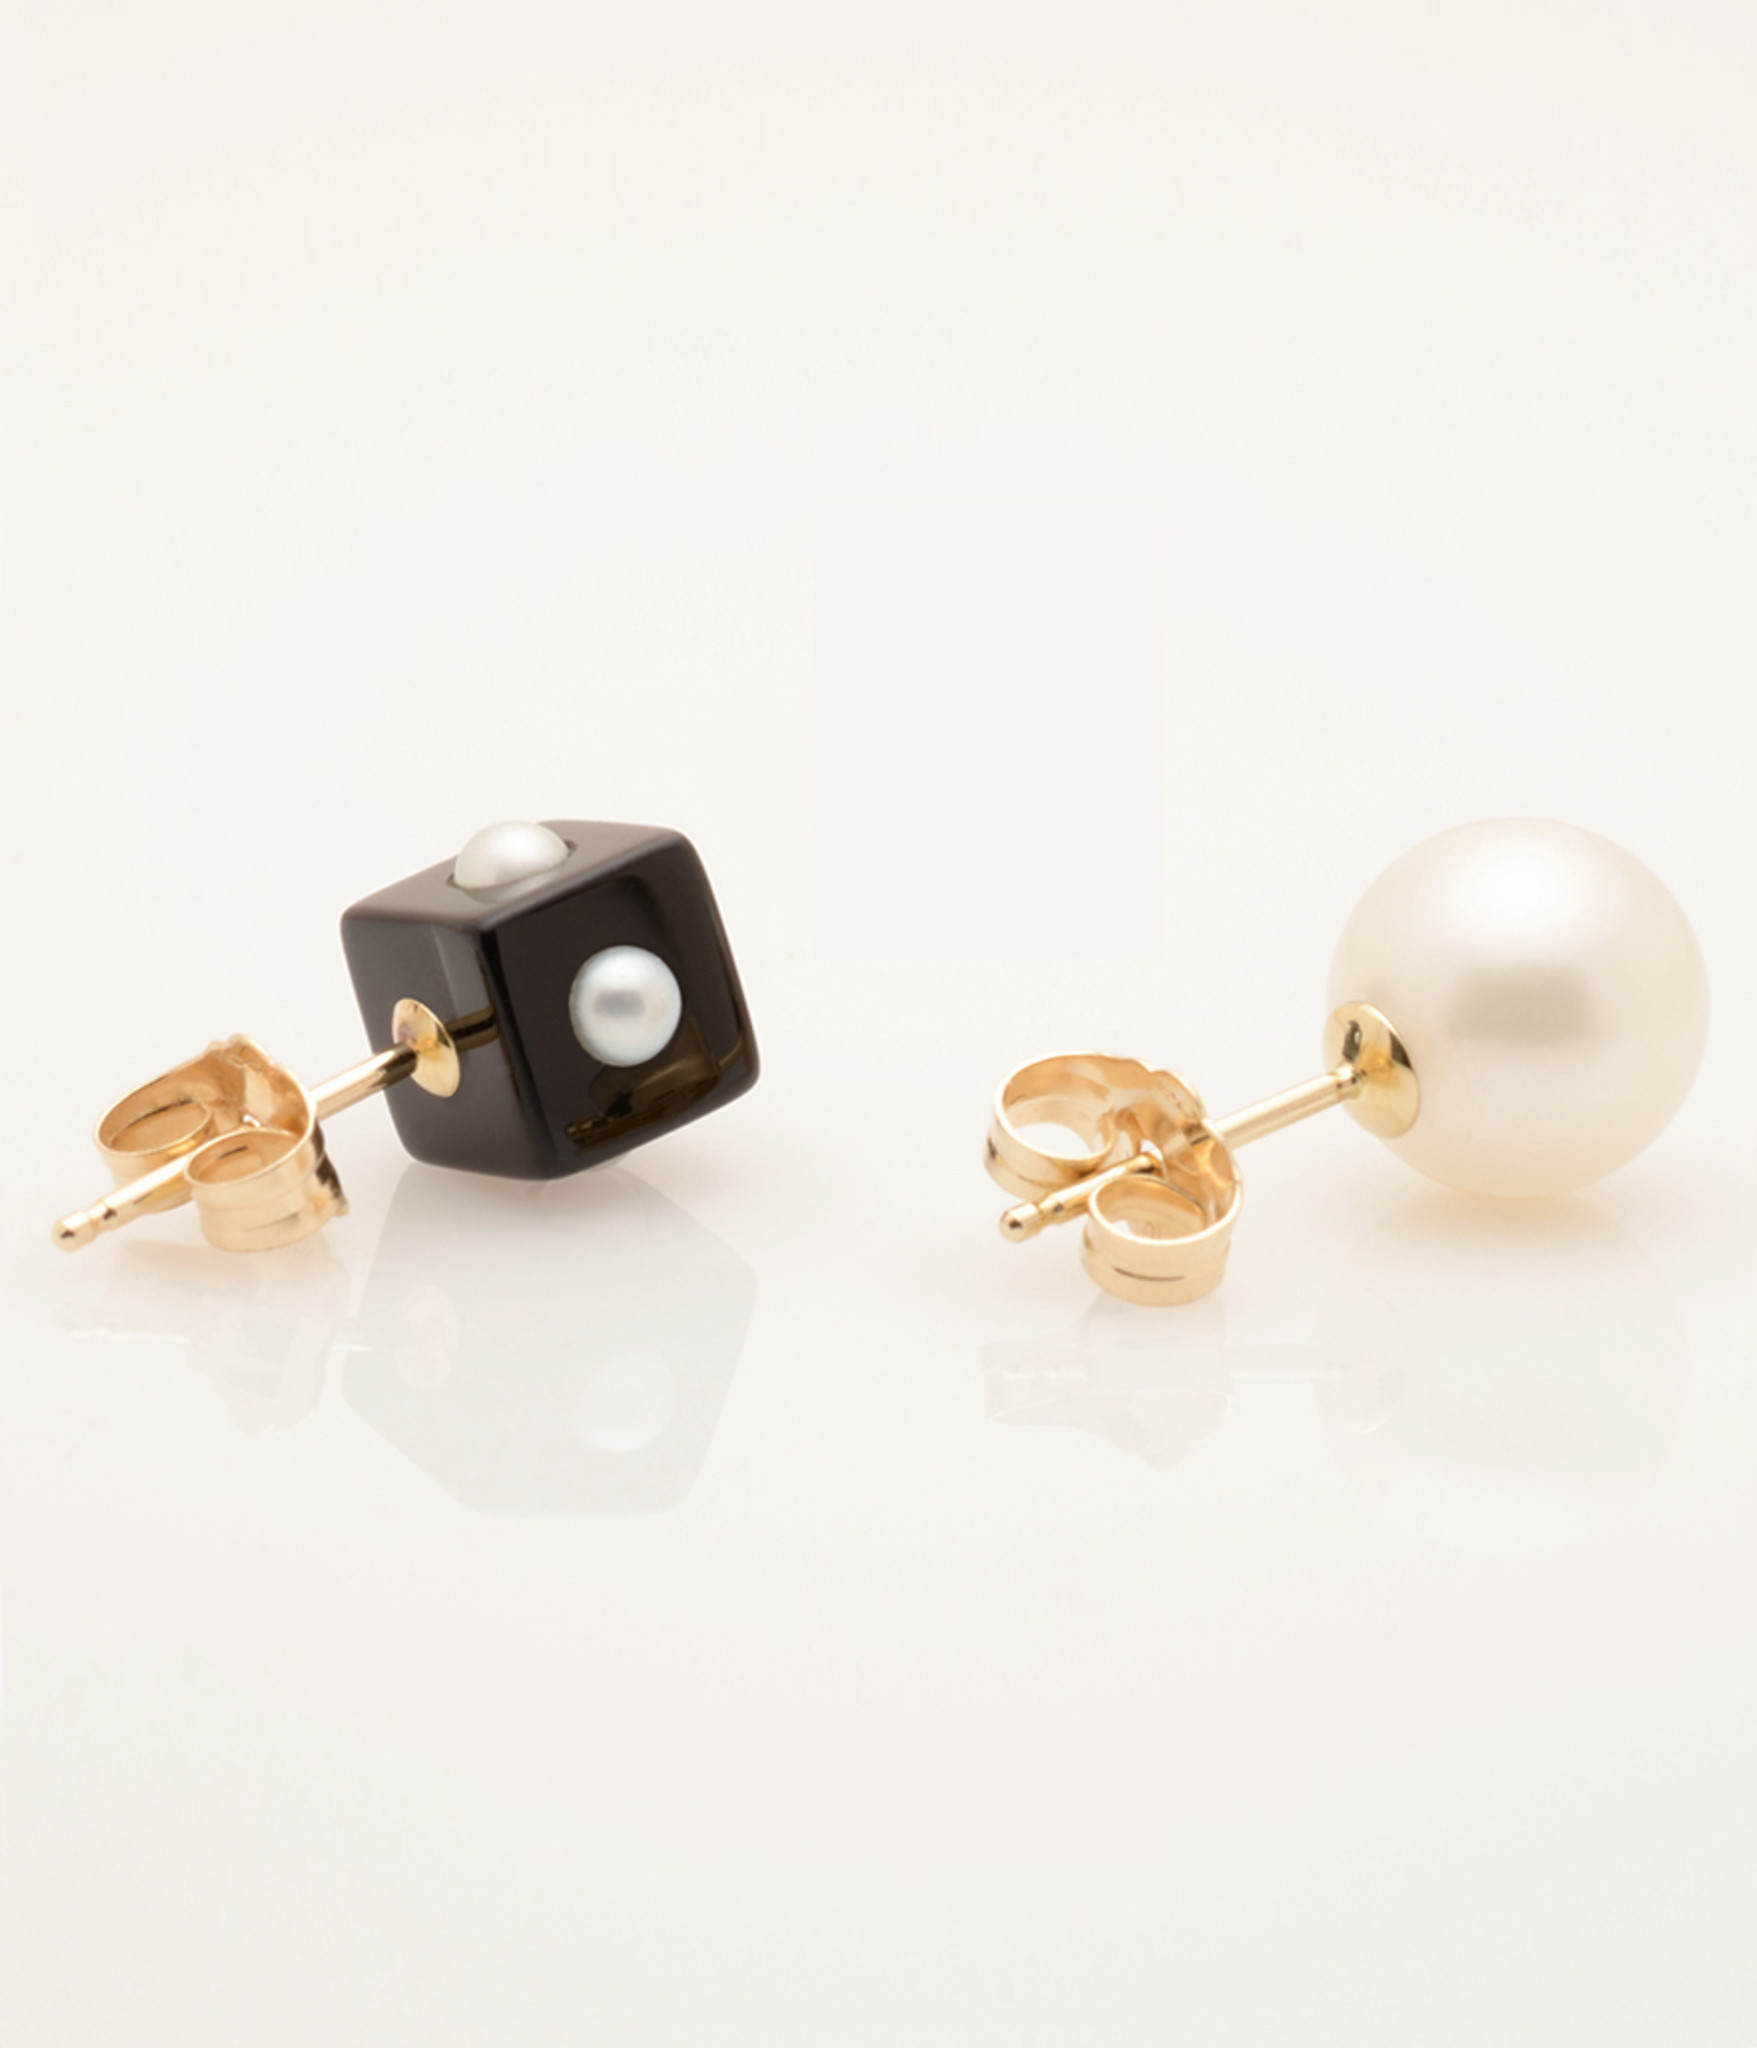 Side view of Mini Pearl Onyx Cube & Pearl Earring with 14k Gold Post by Jewelry Designer Nektar De Stagni (8-9 mm)